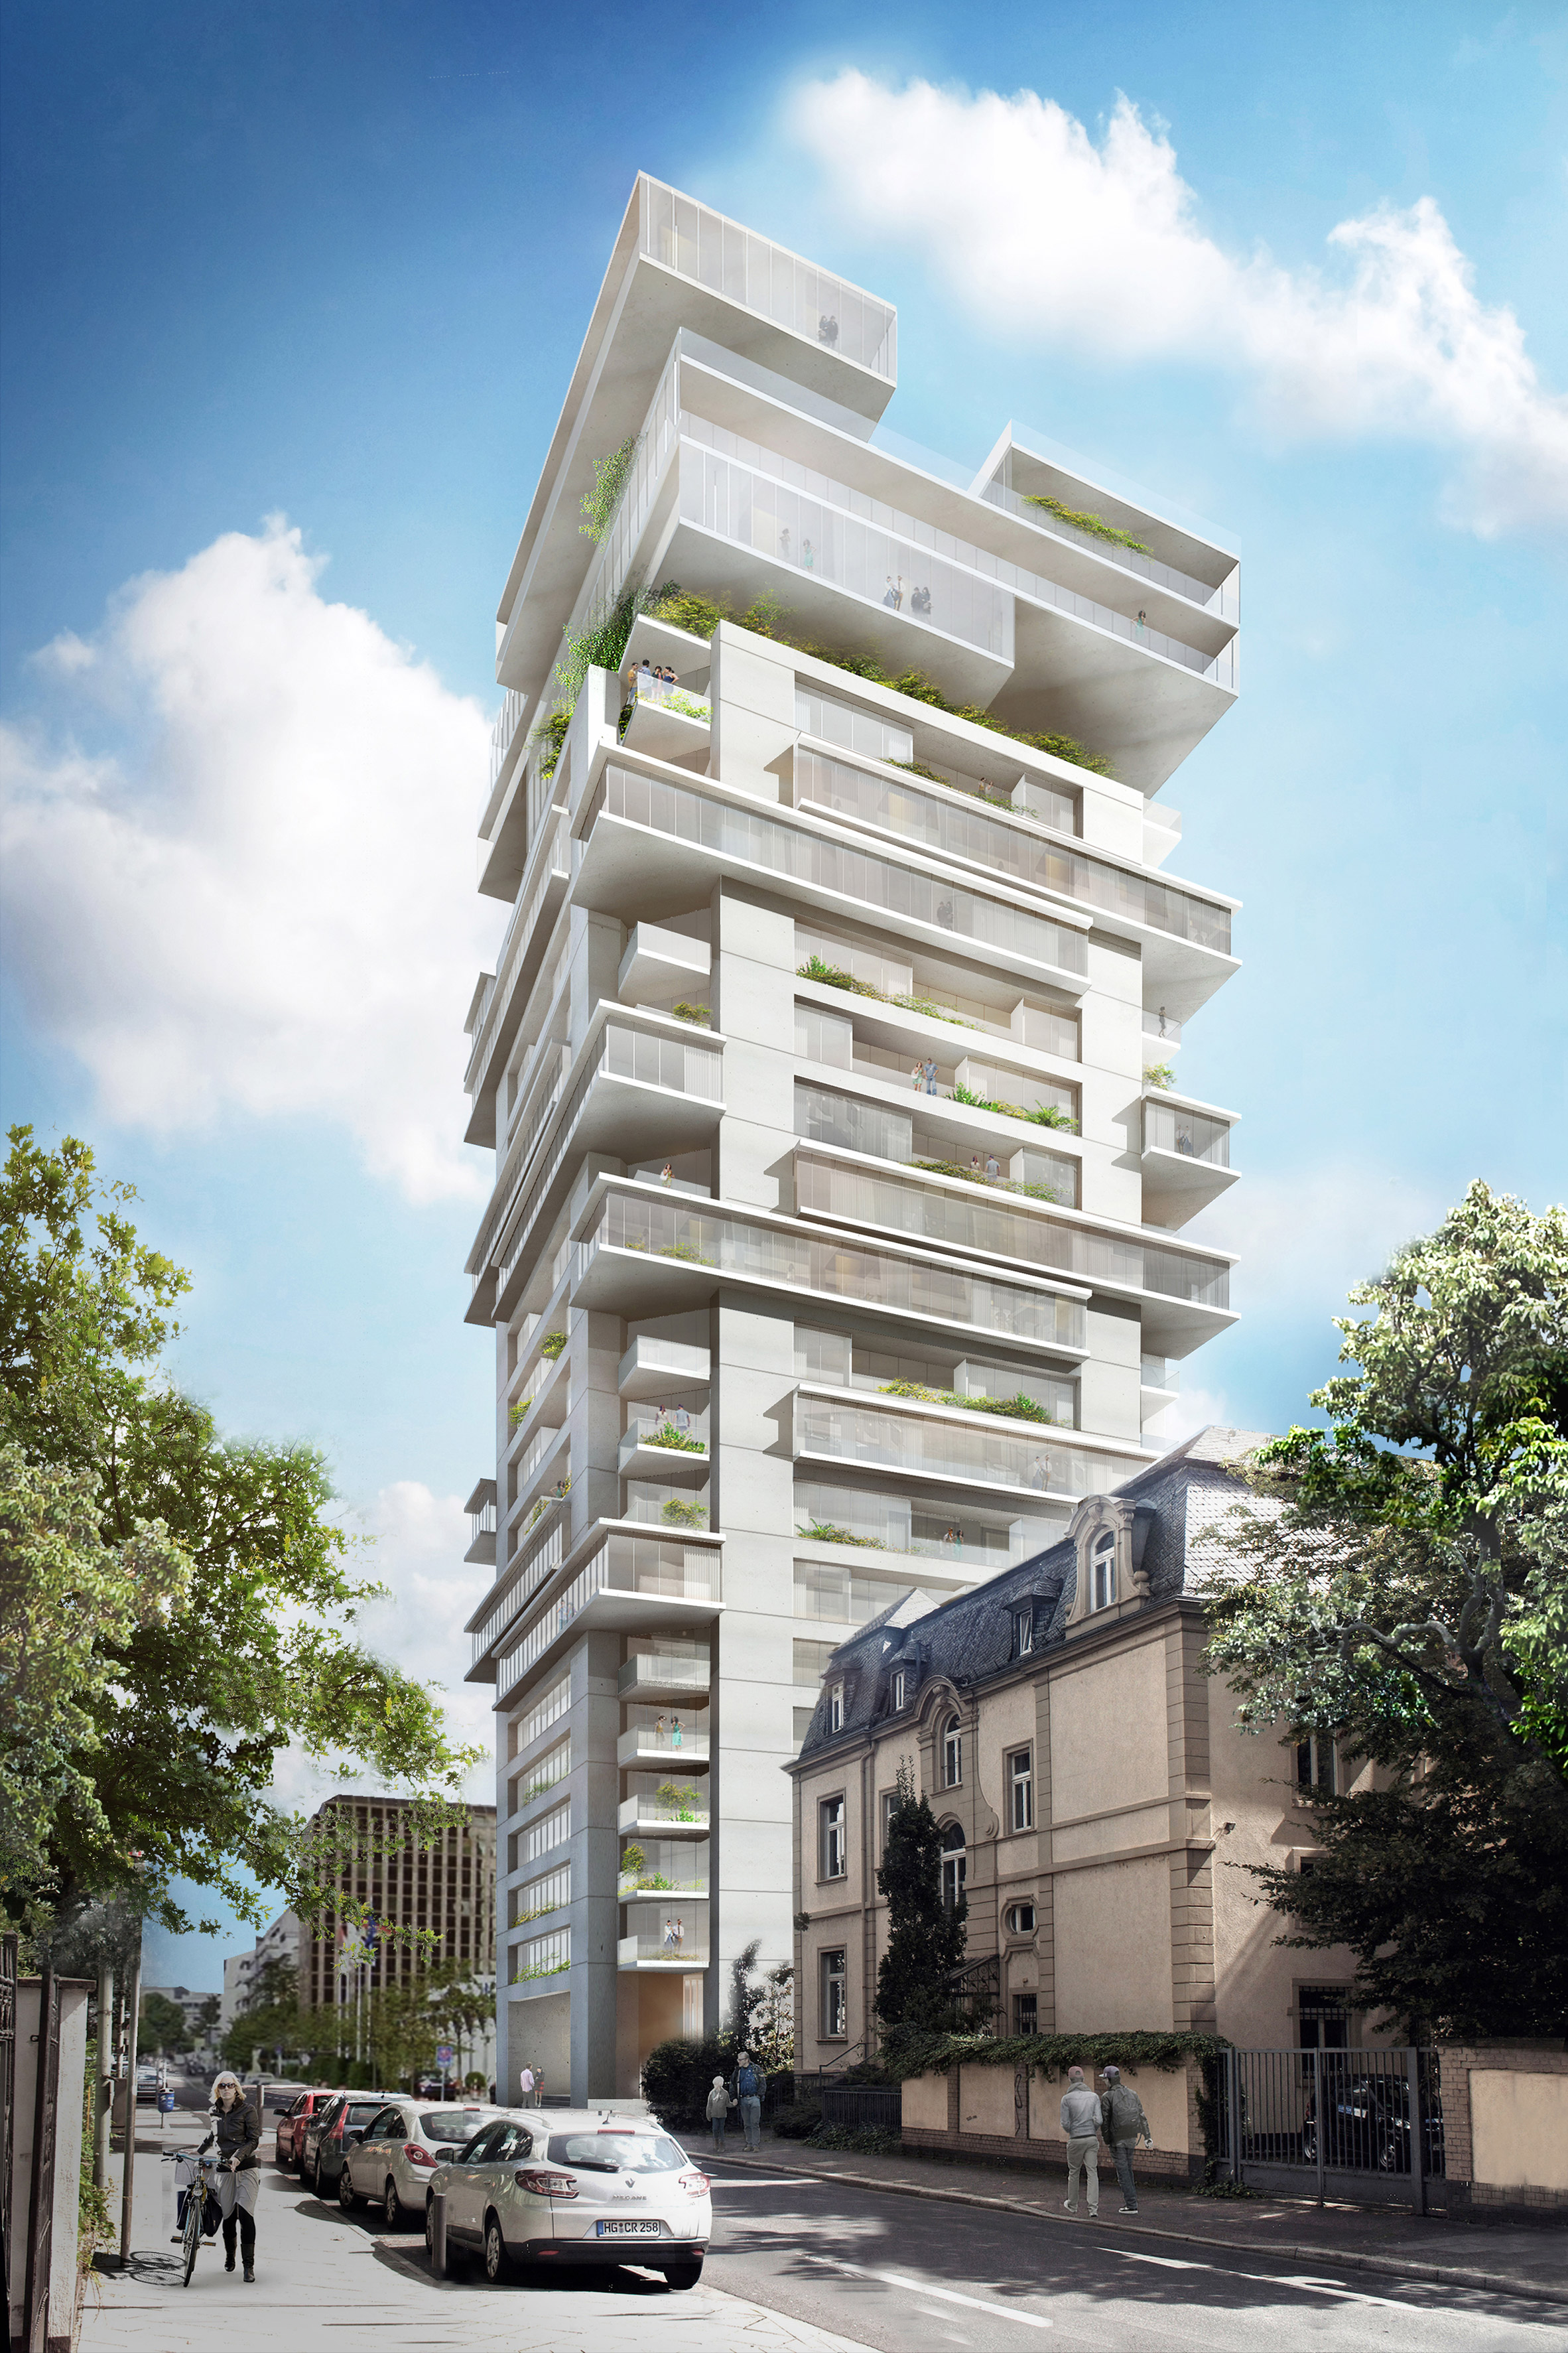 Ole Scheeren plans to radically transform Frankfurt office block into Jenga-like apartment tower